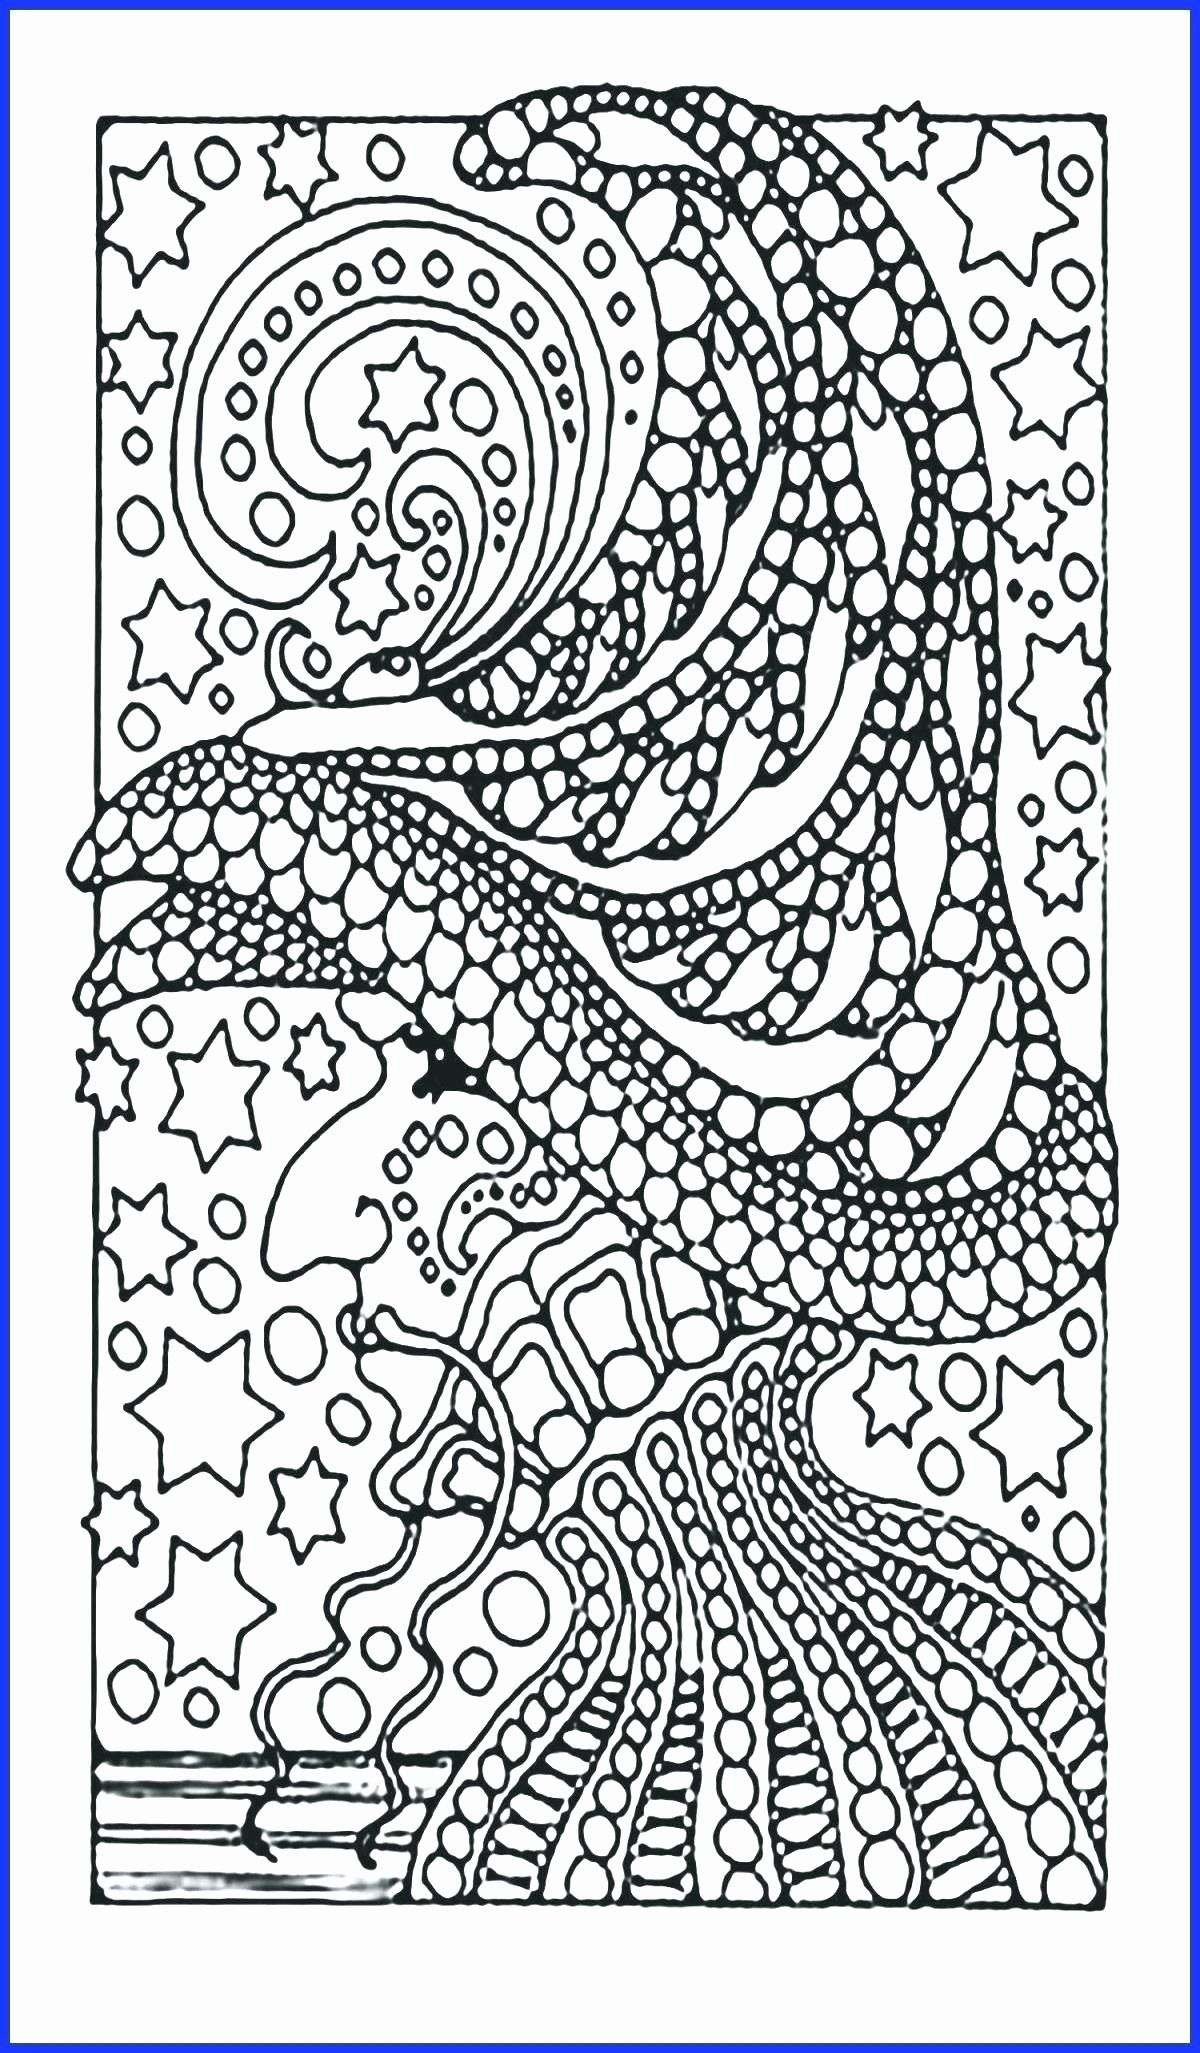 Coloring By Number Sheets Fresh Worksheet Ideas Number Worksheets Preschool Math Free Witch Coloring Pages Coloring Pages Inspirational Heart Coloring Pages